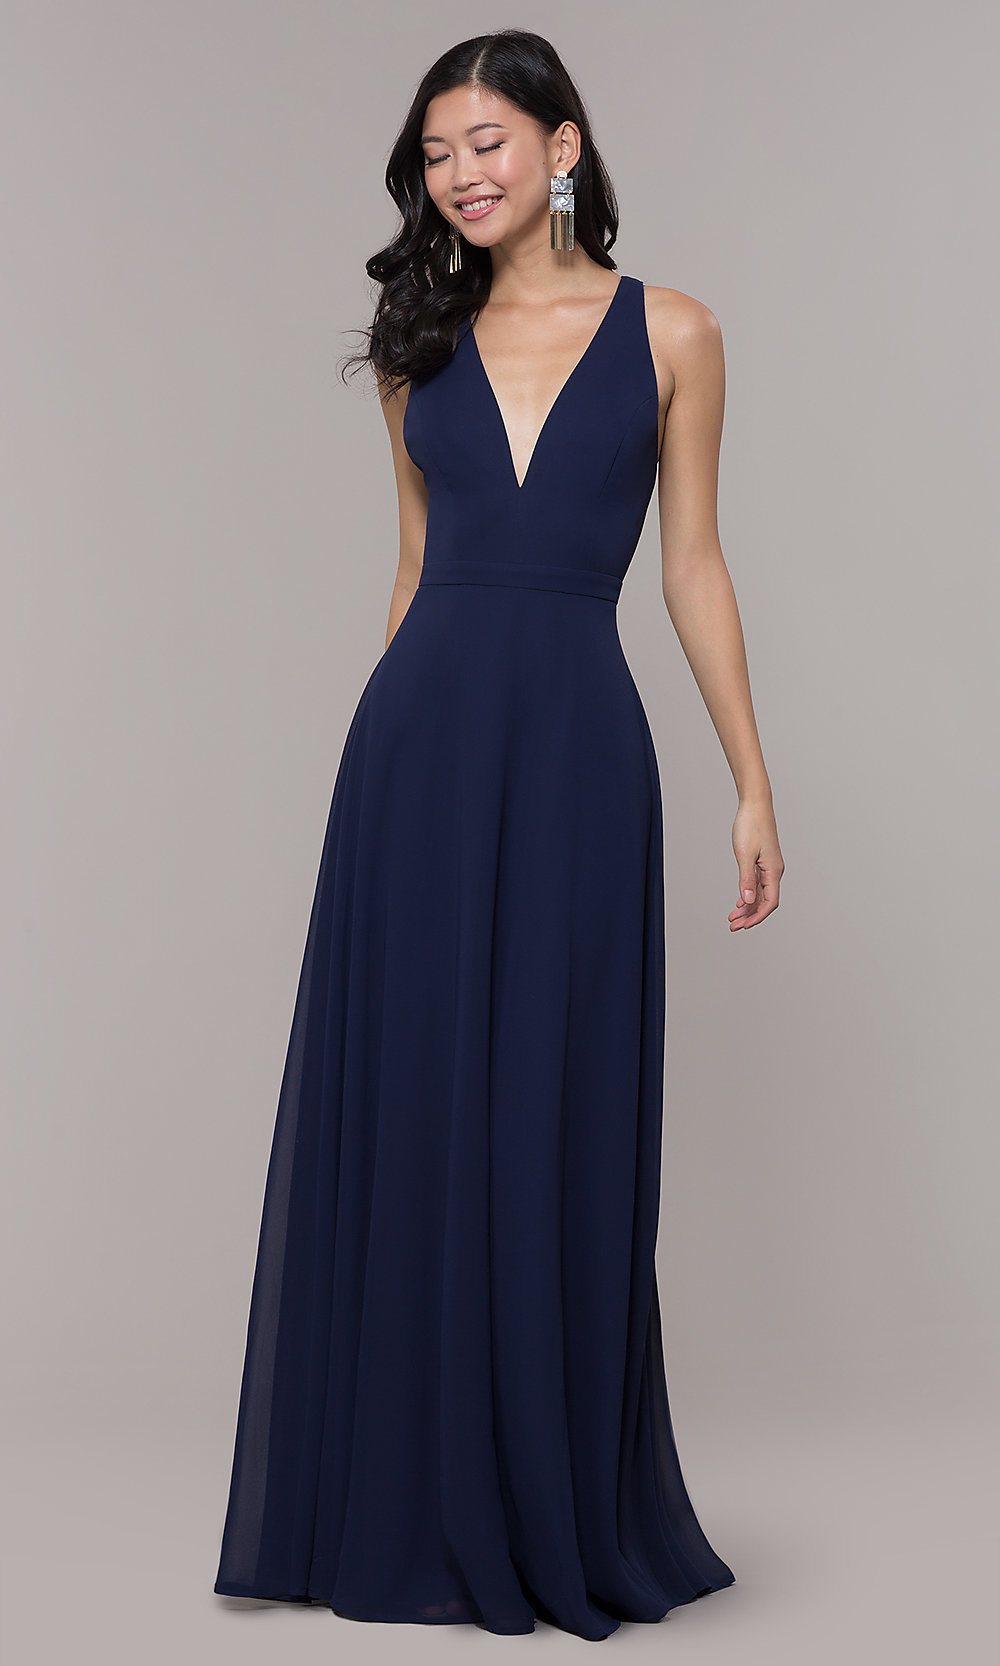 7a5472f49b ... navy blue v-neck prom dress by Simply. Style  LP. Tap to expand